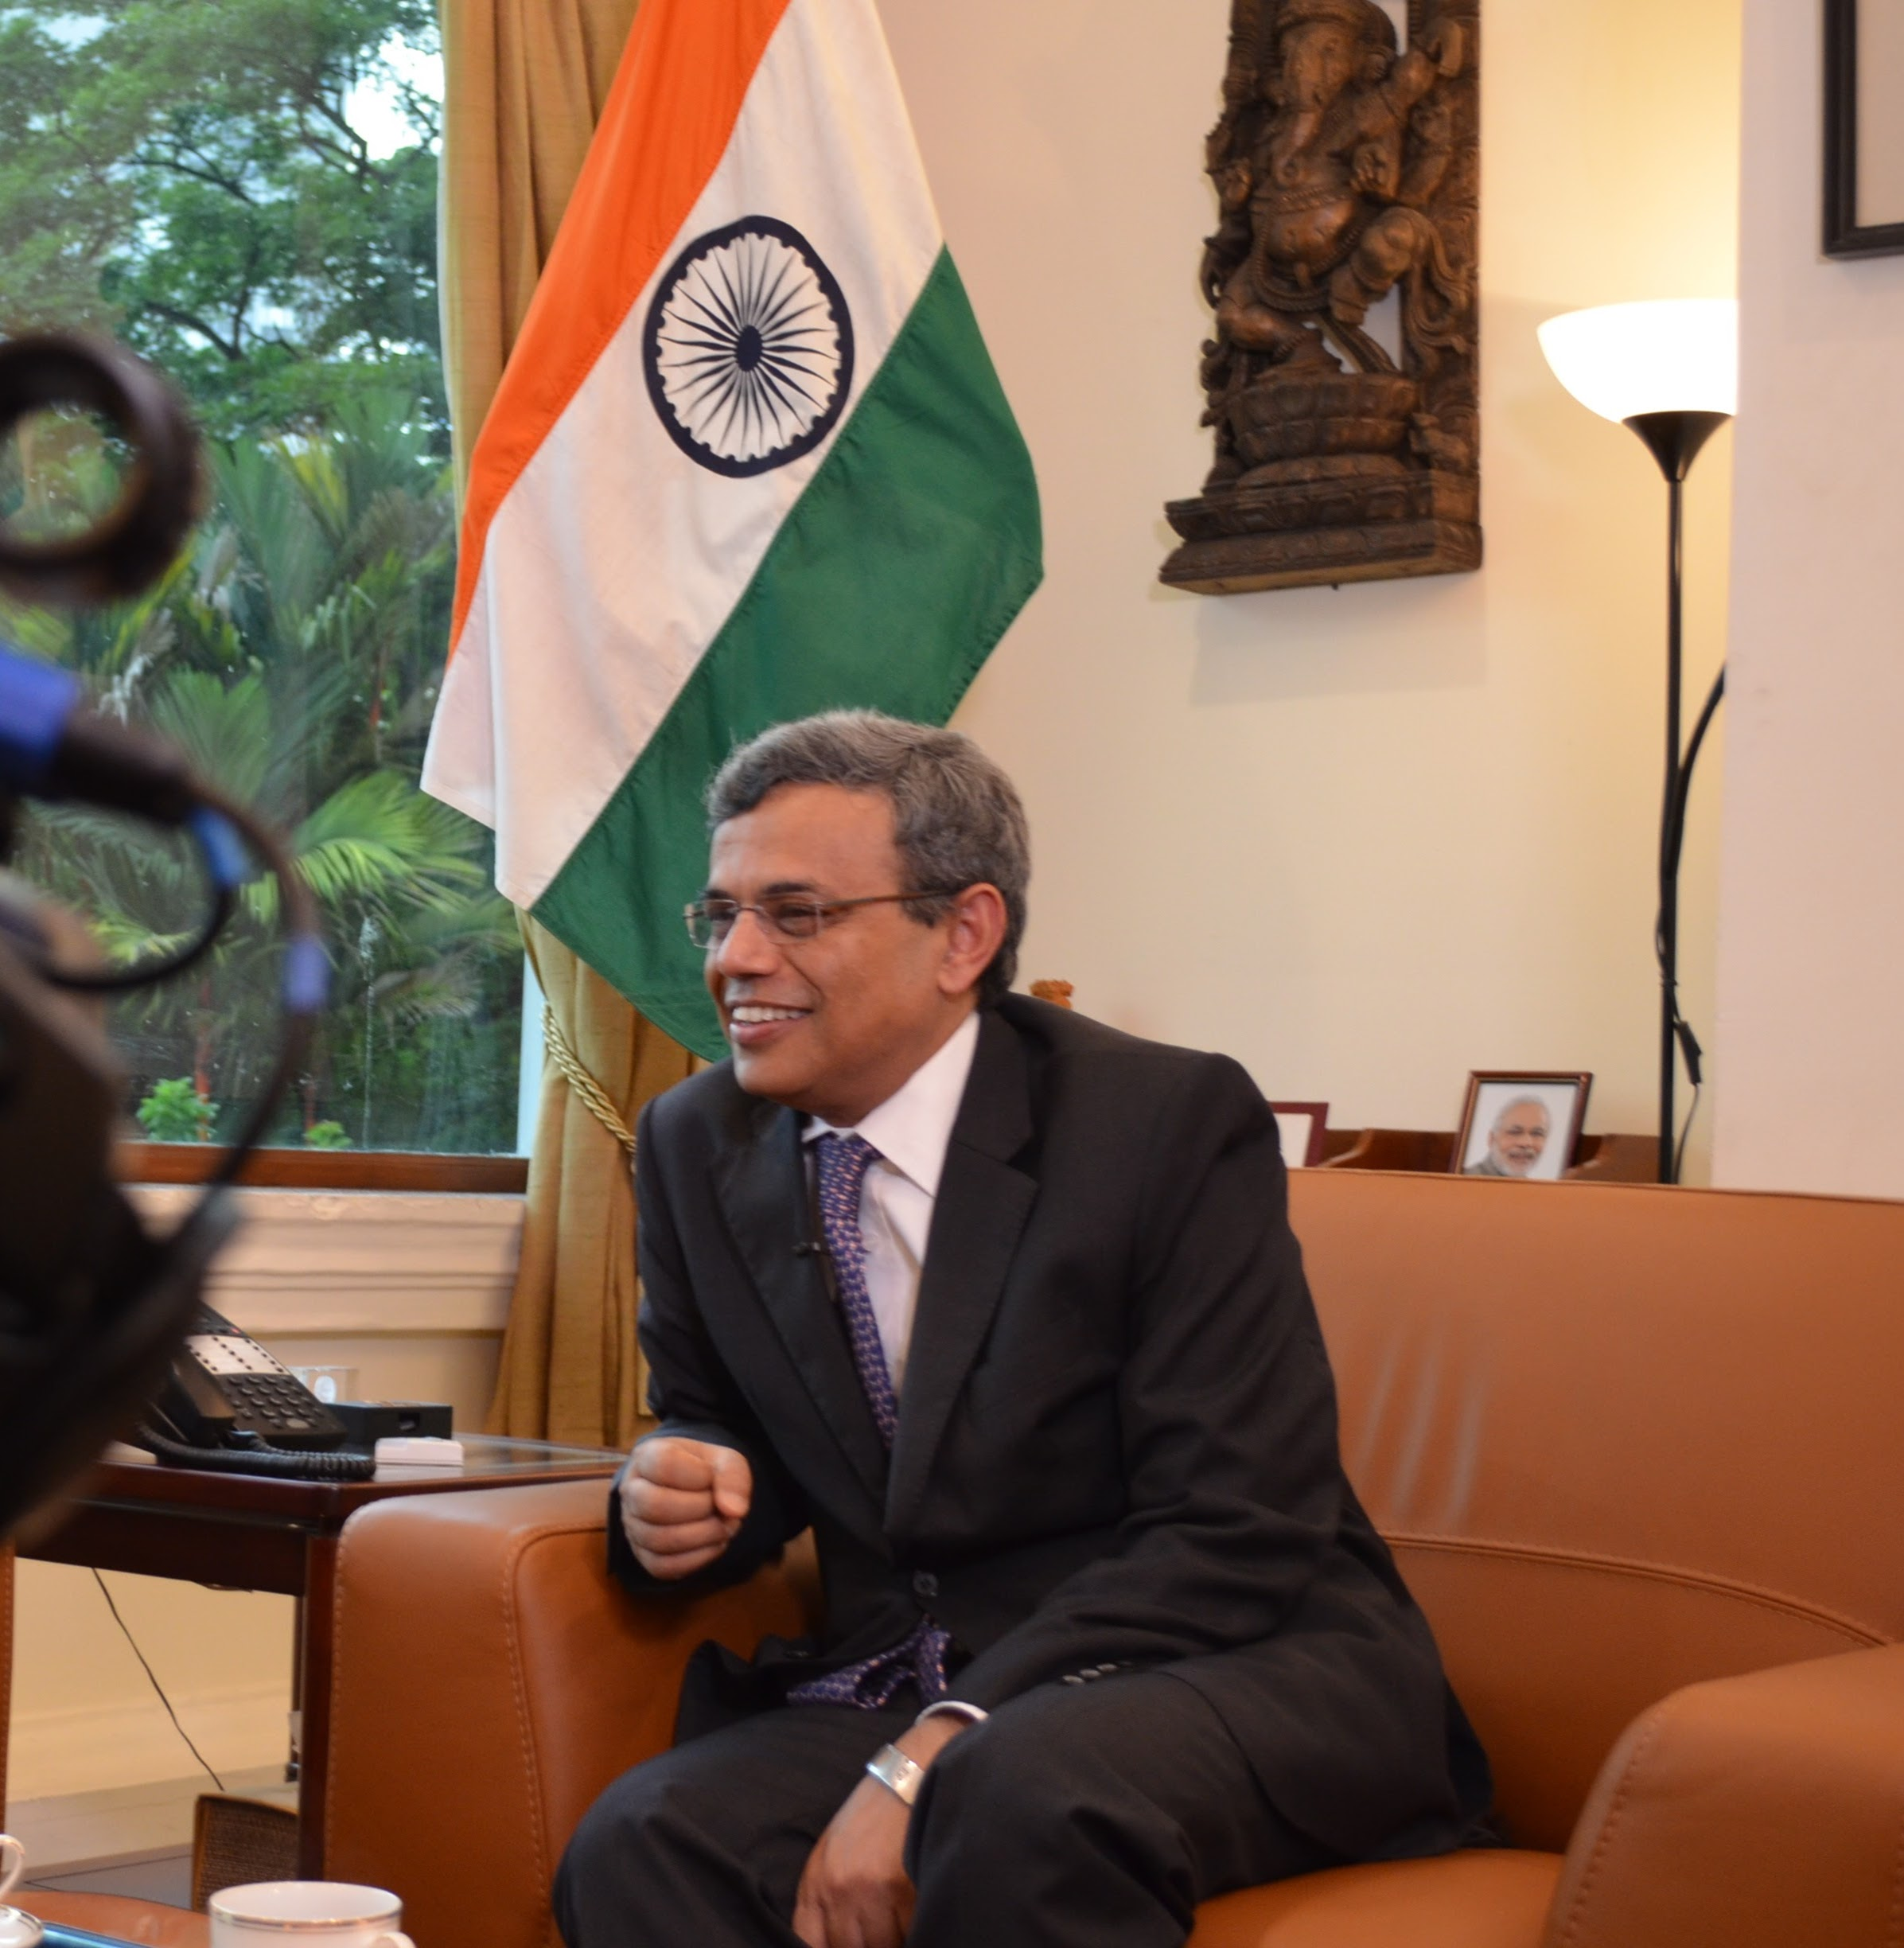 H.E. Jawed Ashraf, High Commissioner of India to Singapore Photo: Connected to India